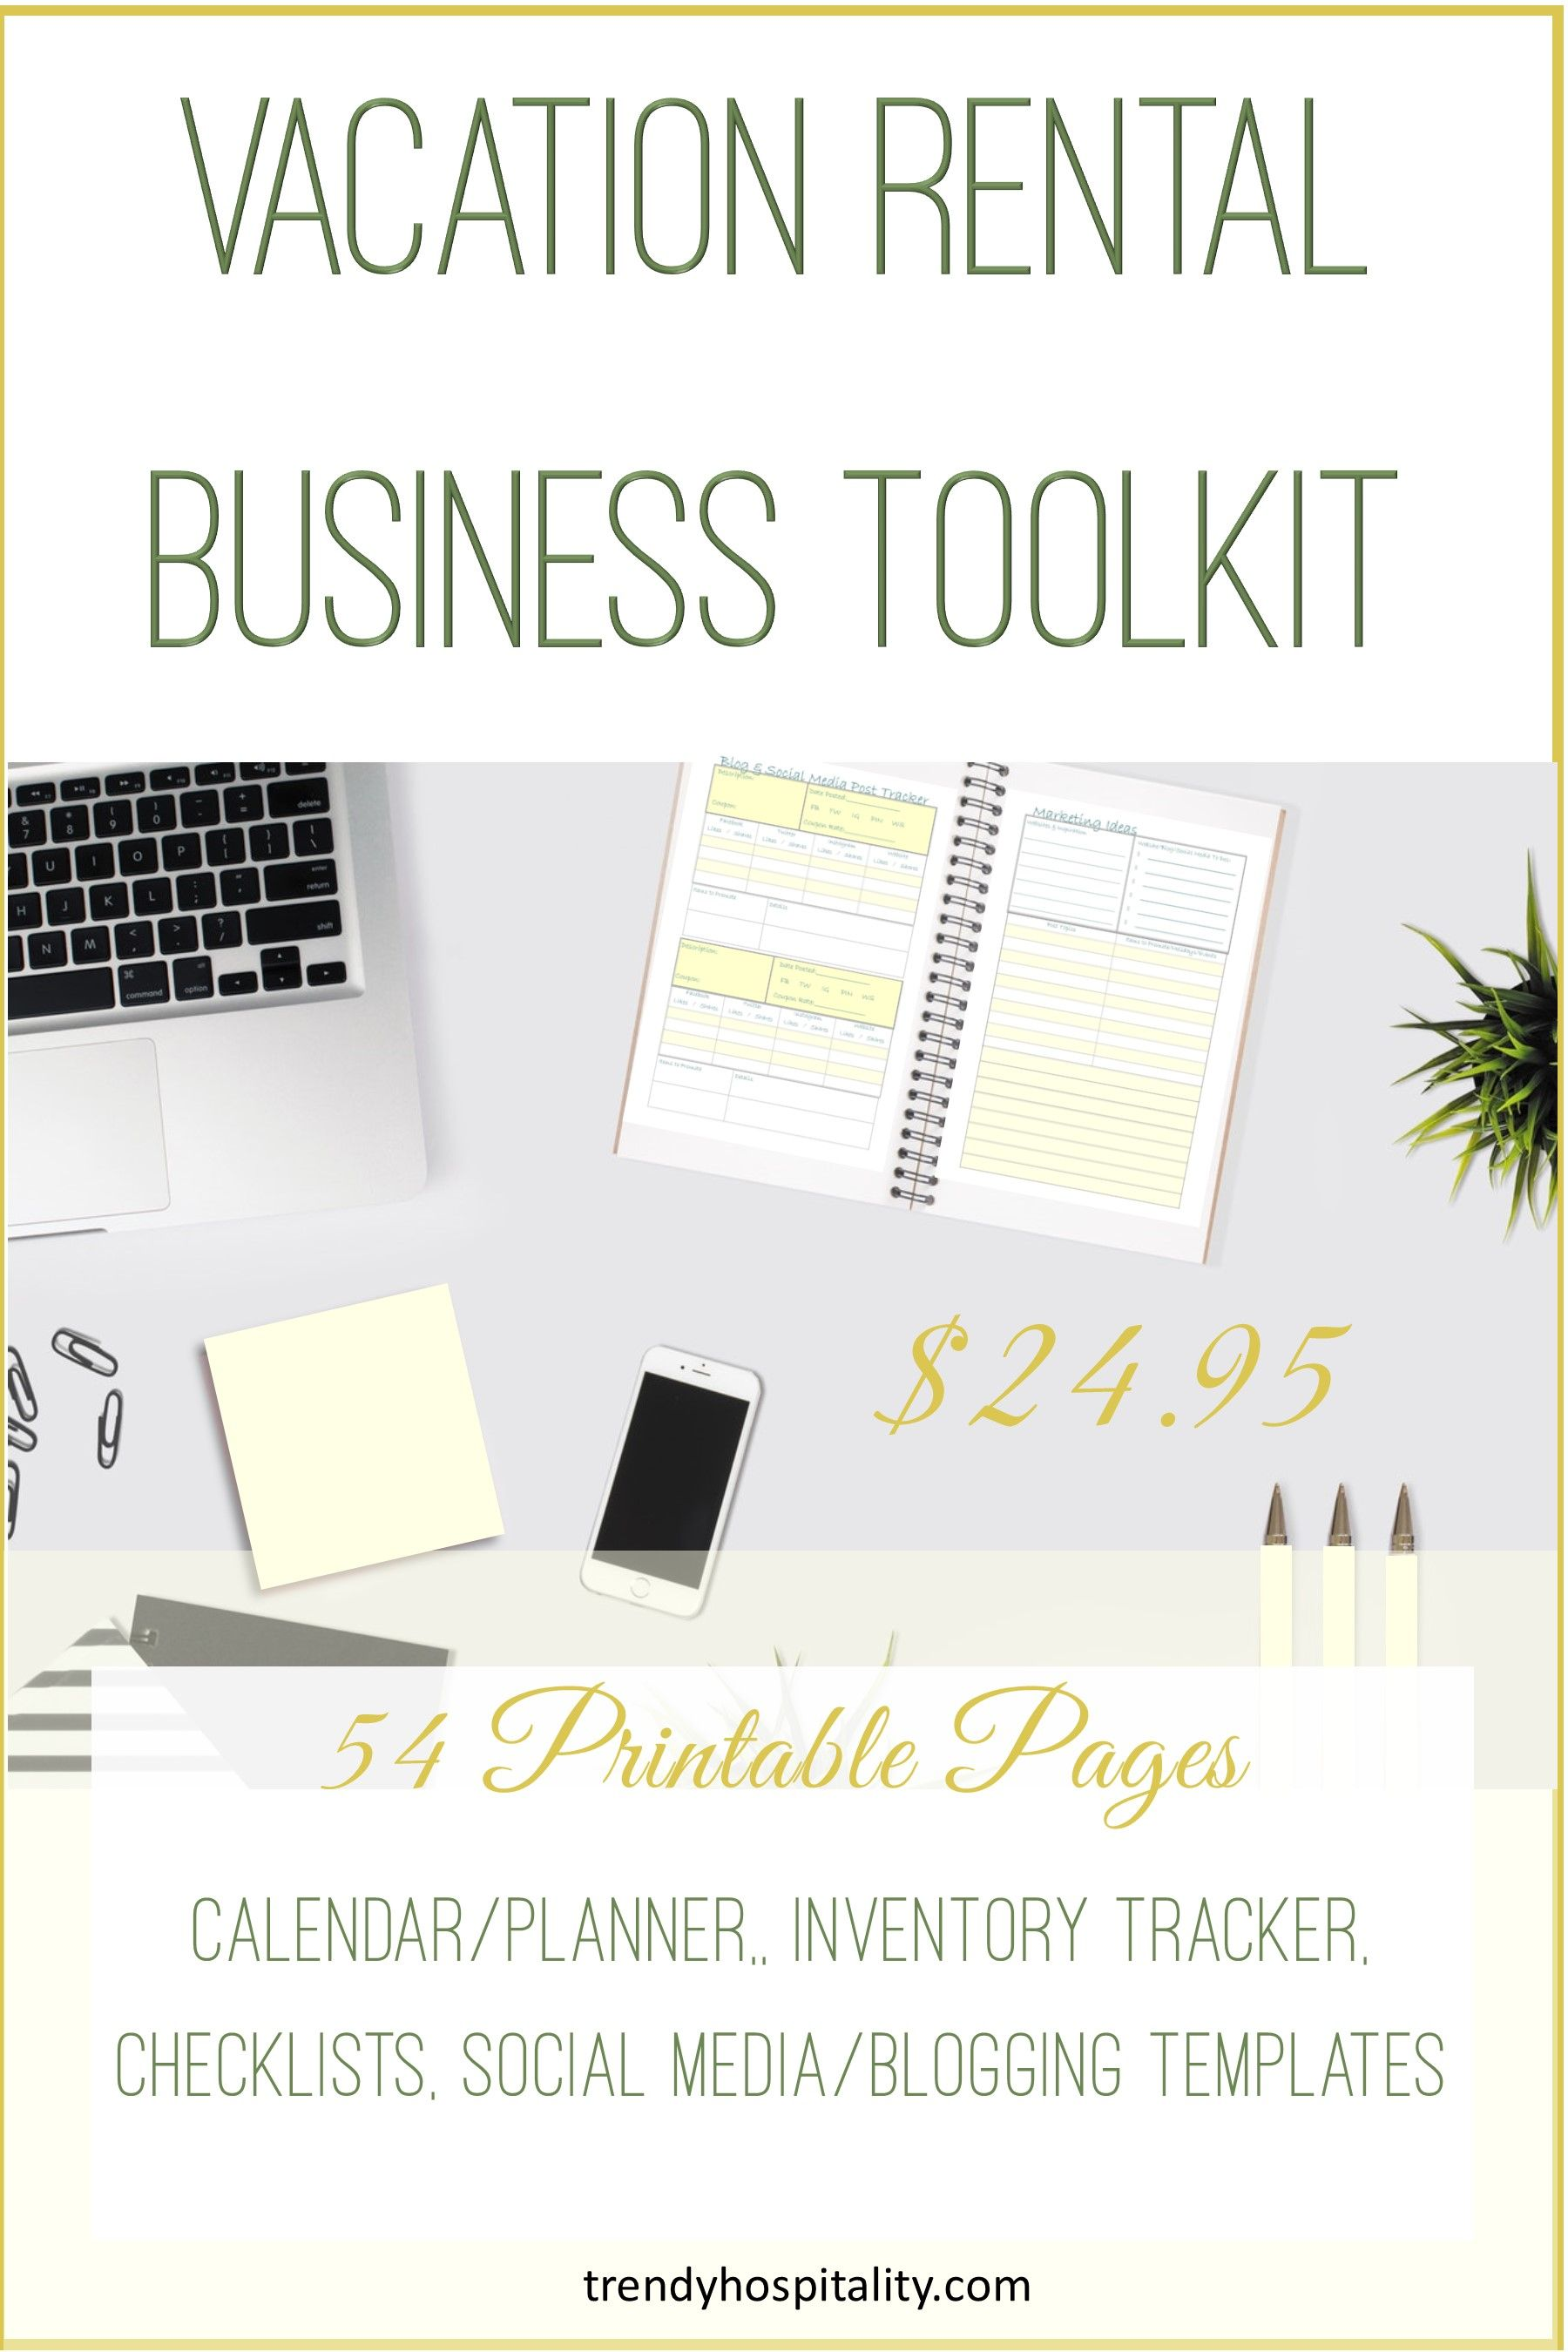 Vacation Rental Business Toolkit Vacation Rental Business Vacation Rental Management Property Management Marketing Vacation rental business plan template